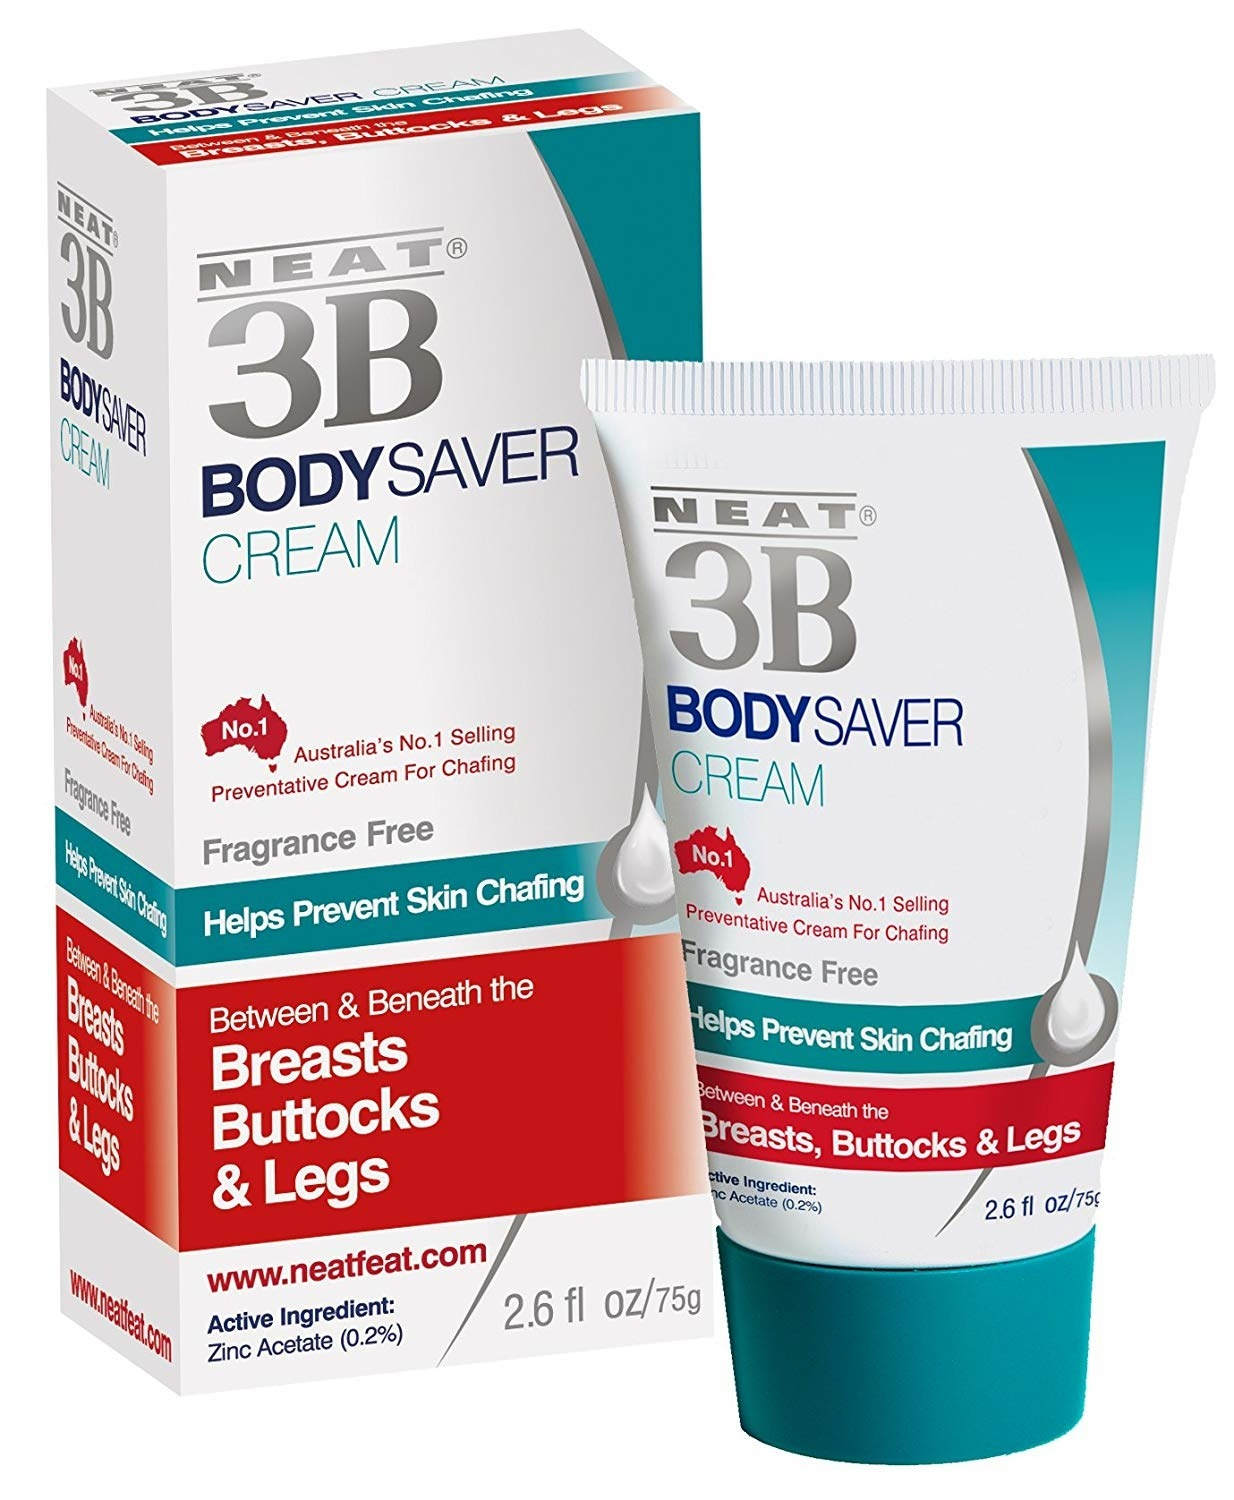 """The tube of Body Saver Cream, which says it works for """"Breasts, Buttocks, and Legs"""" and is  """"Australia's No. 1 Selling Preventative Cream for Chafing"""""""